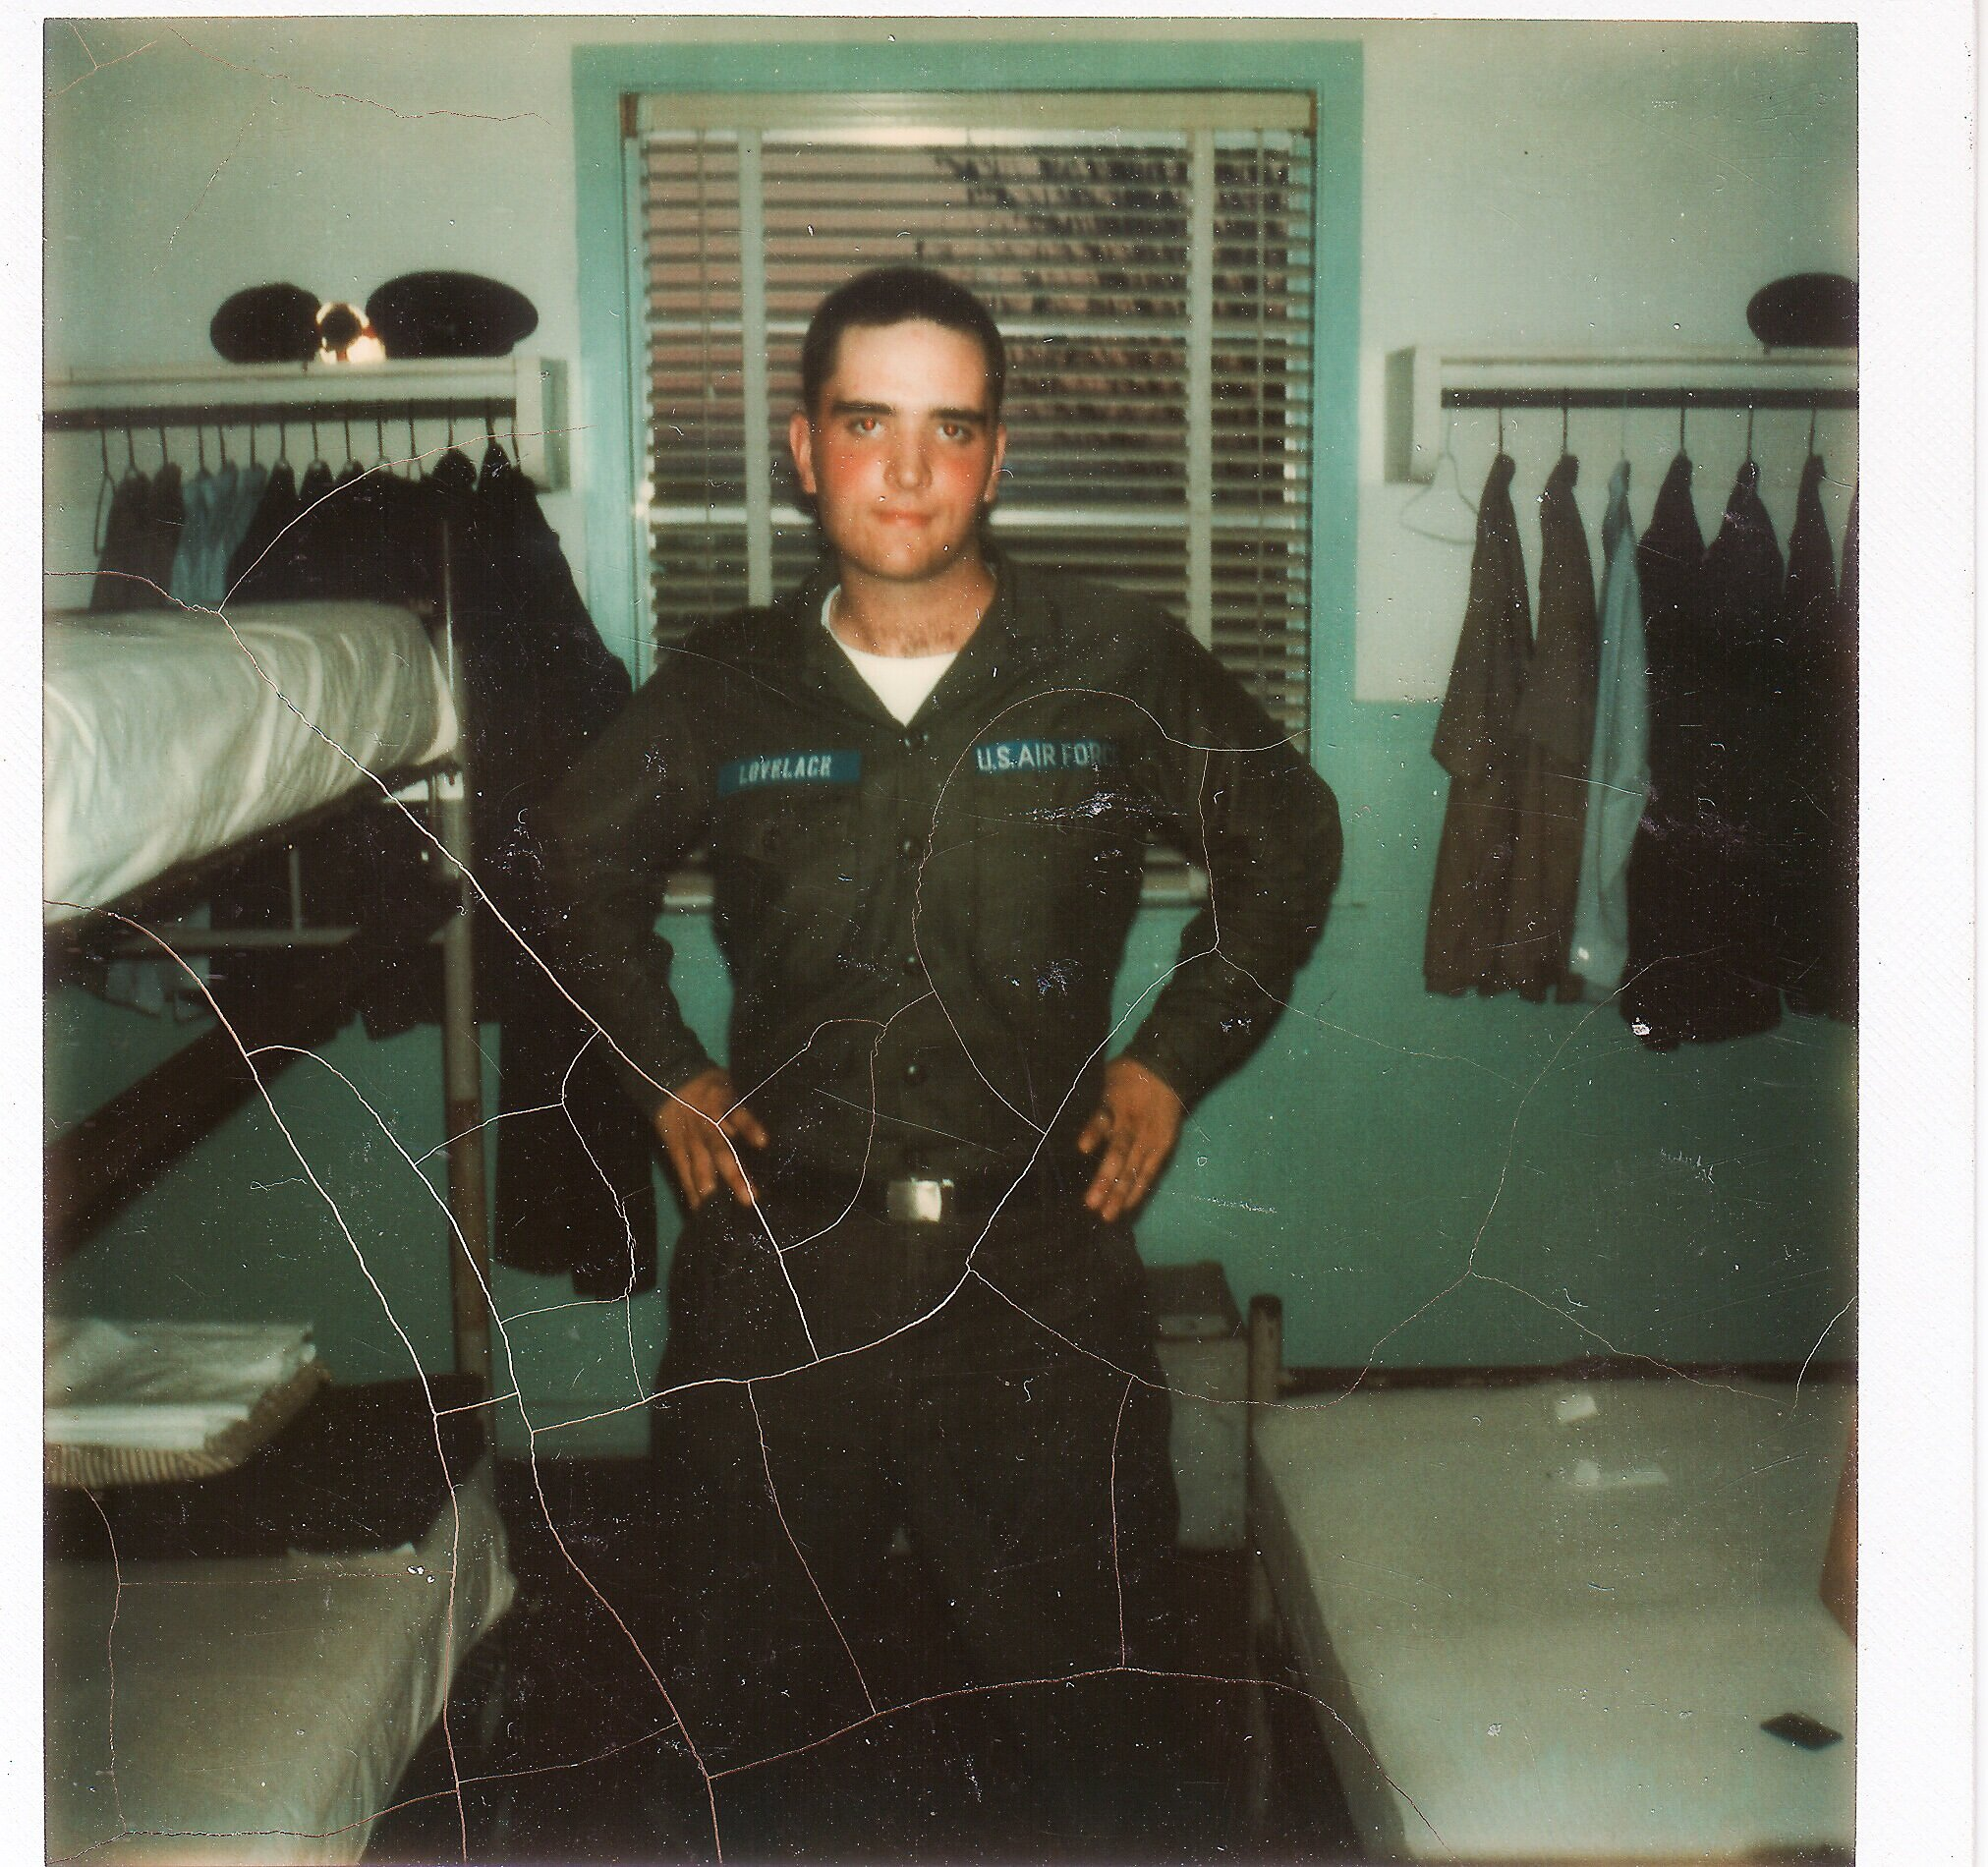 Terry awaiting assignment to Whiteman AFB in 1973.